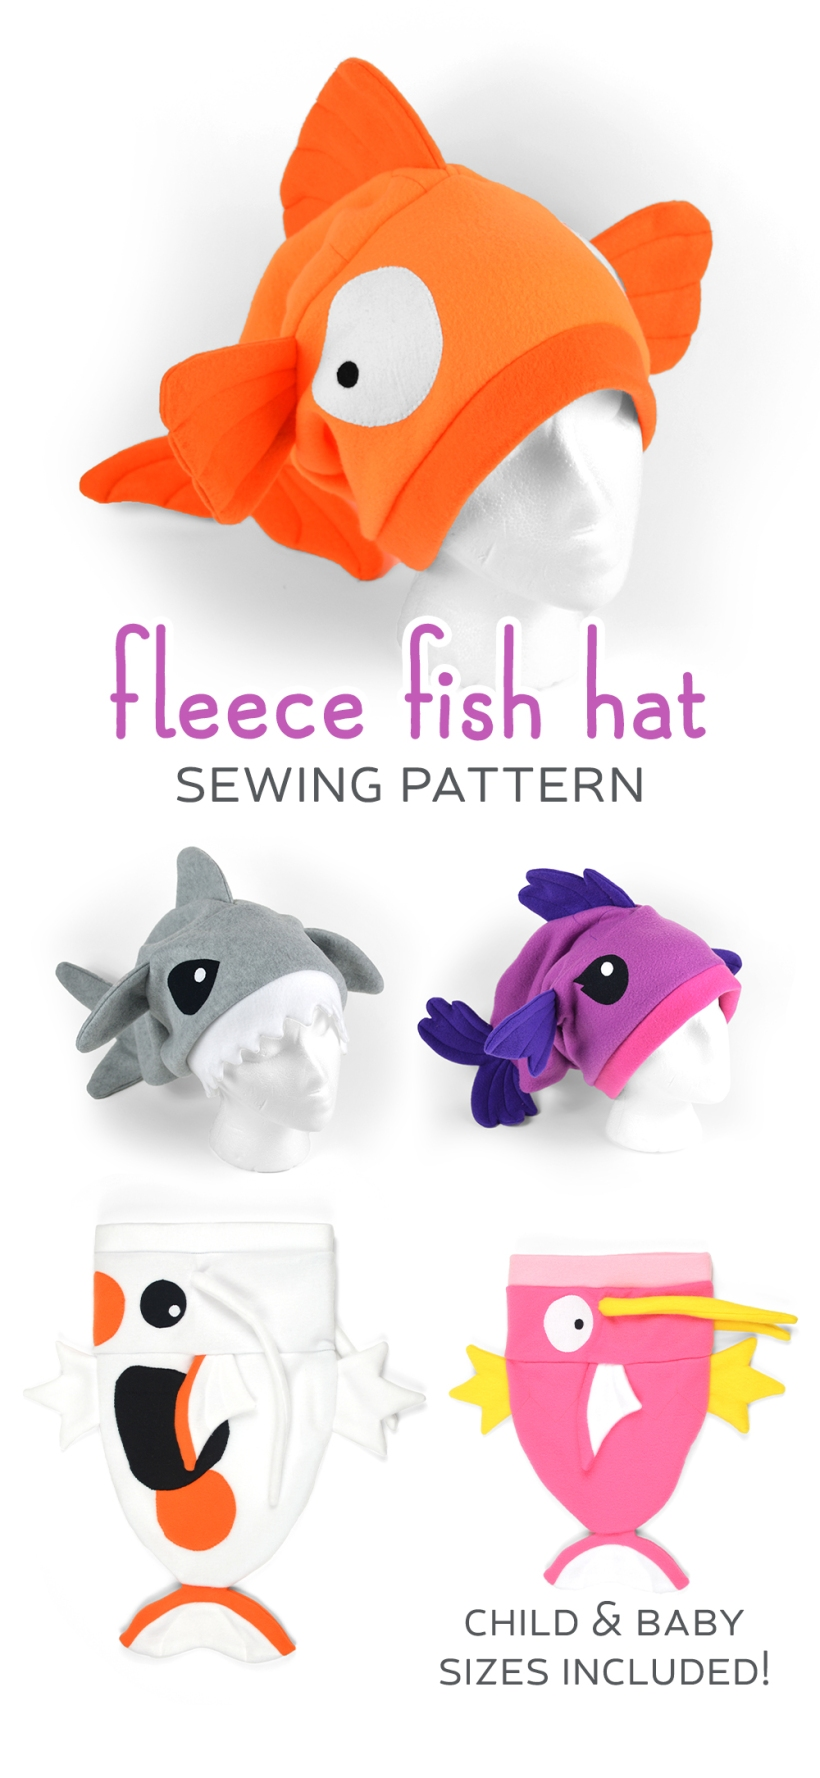 New shop pattern fleece fish hat choly knight new shop pattern fleece fish hat jeuxipadfo Image collections